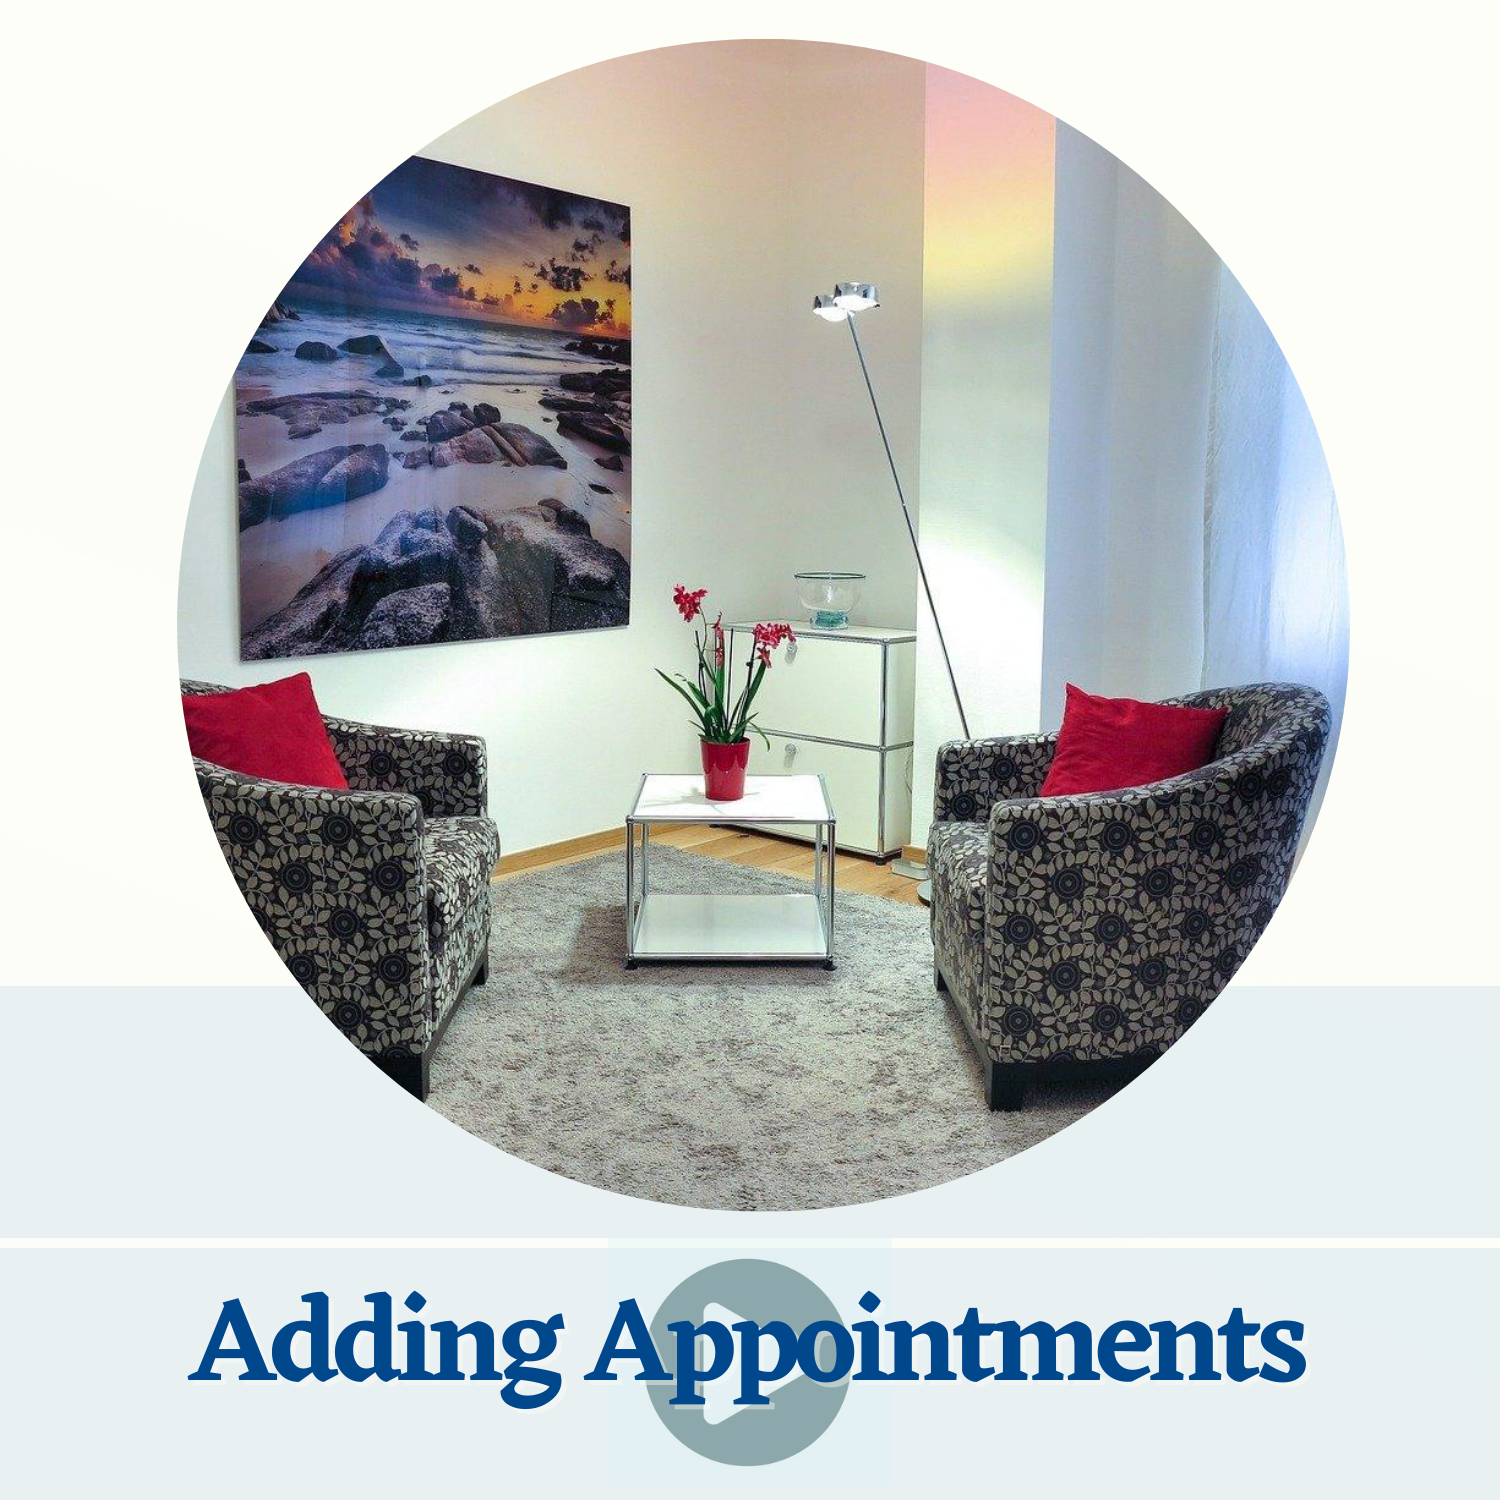 Adding Appointments